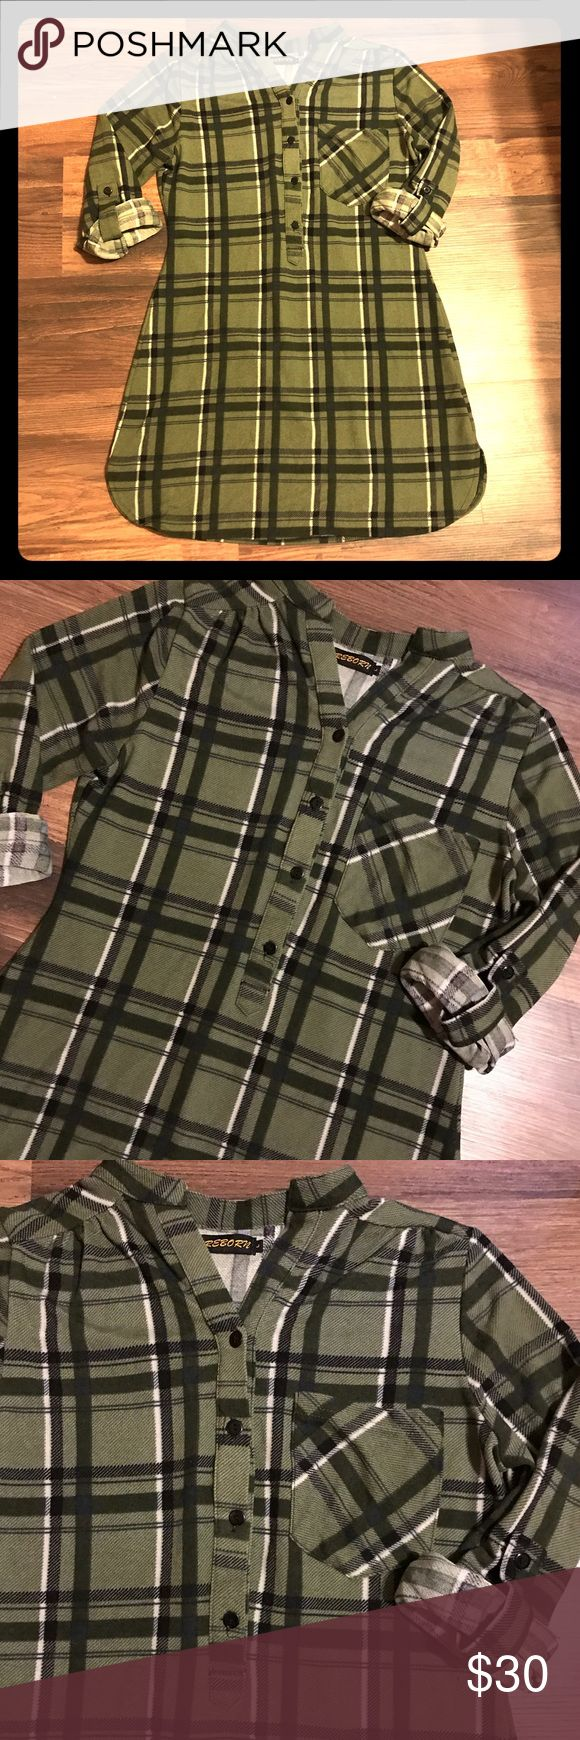 Reborn. Green Flannel Tunic/Dress size Large. Super cute green plaid flannel Dress Tunic made by Reborn. Size Large. Runs like a medium. New never been worn. Reborn Dresses